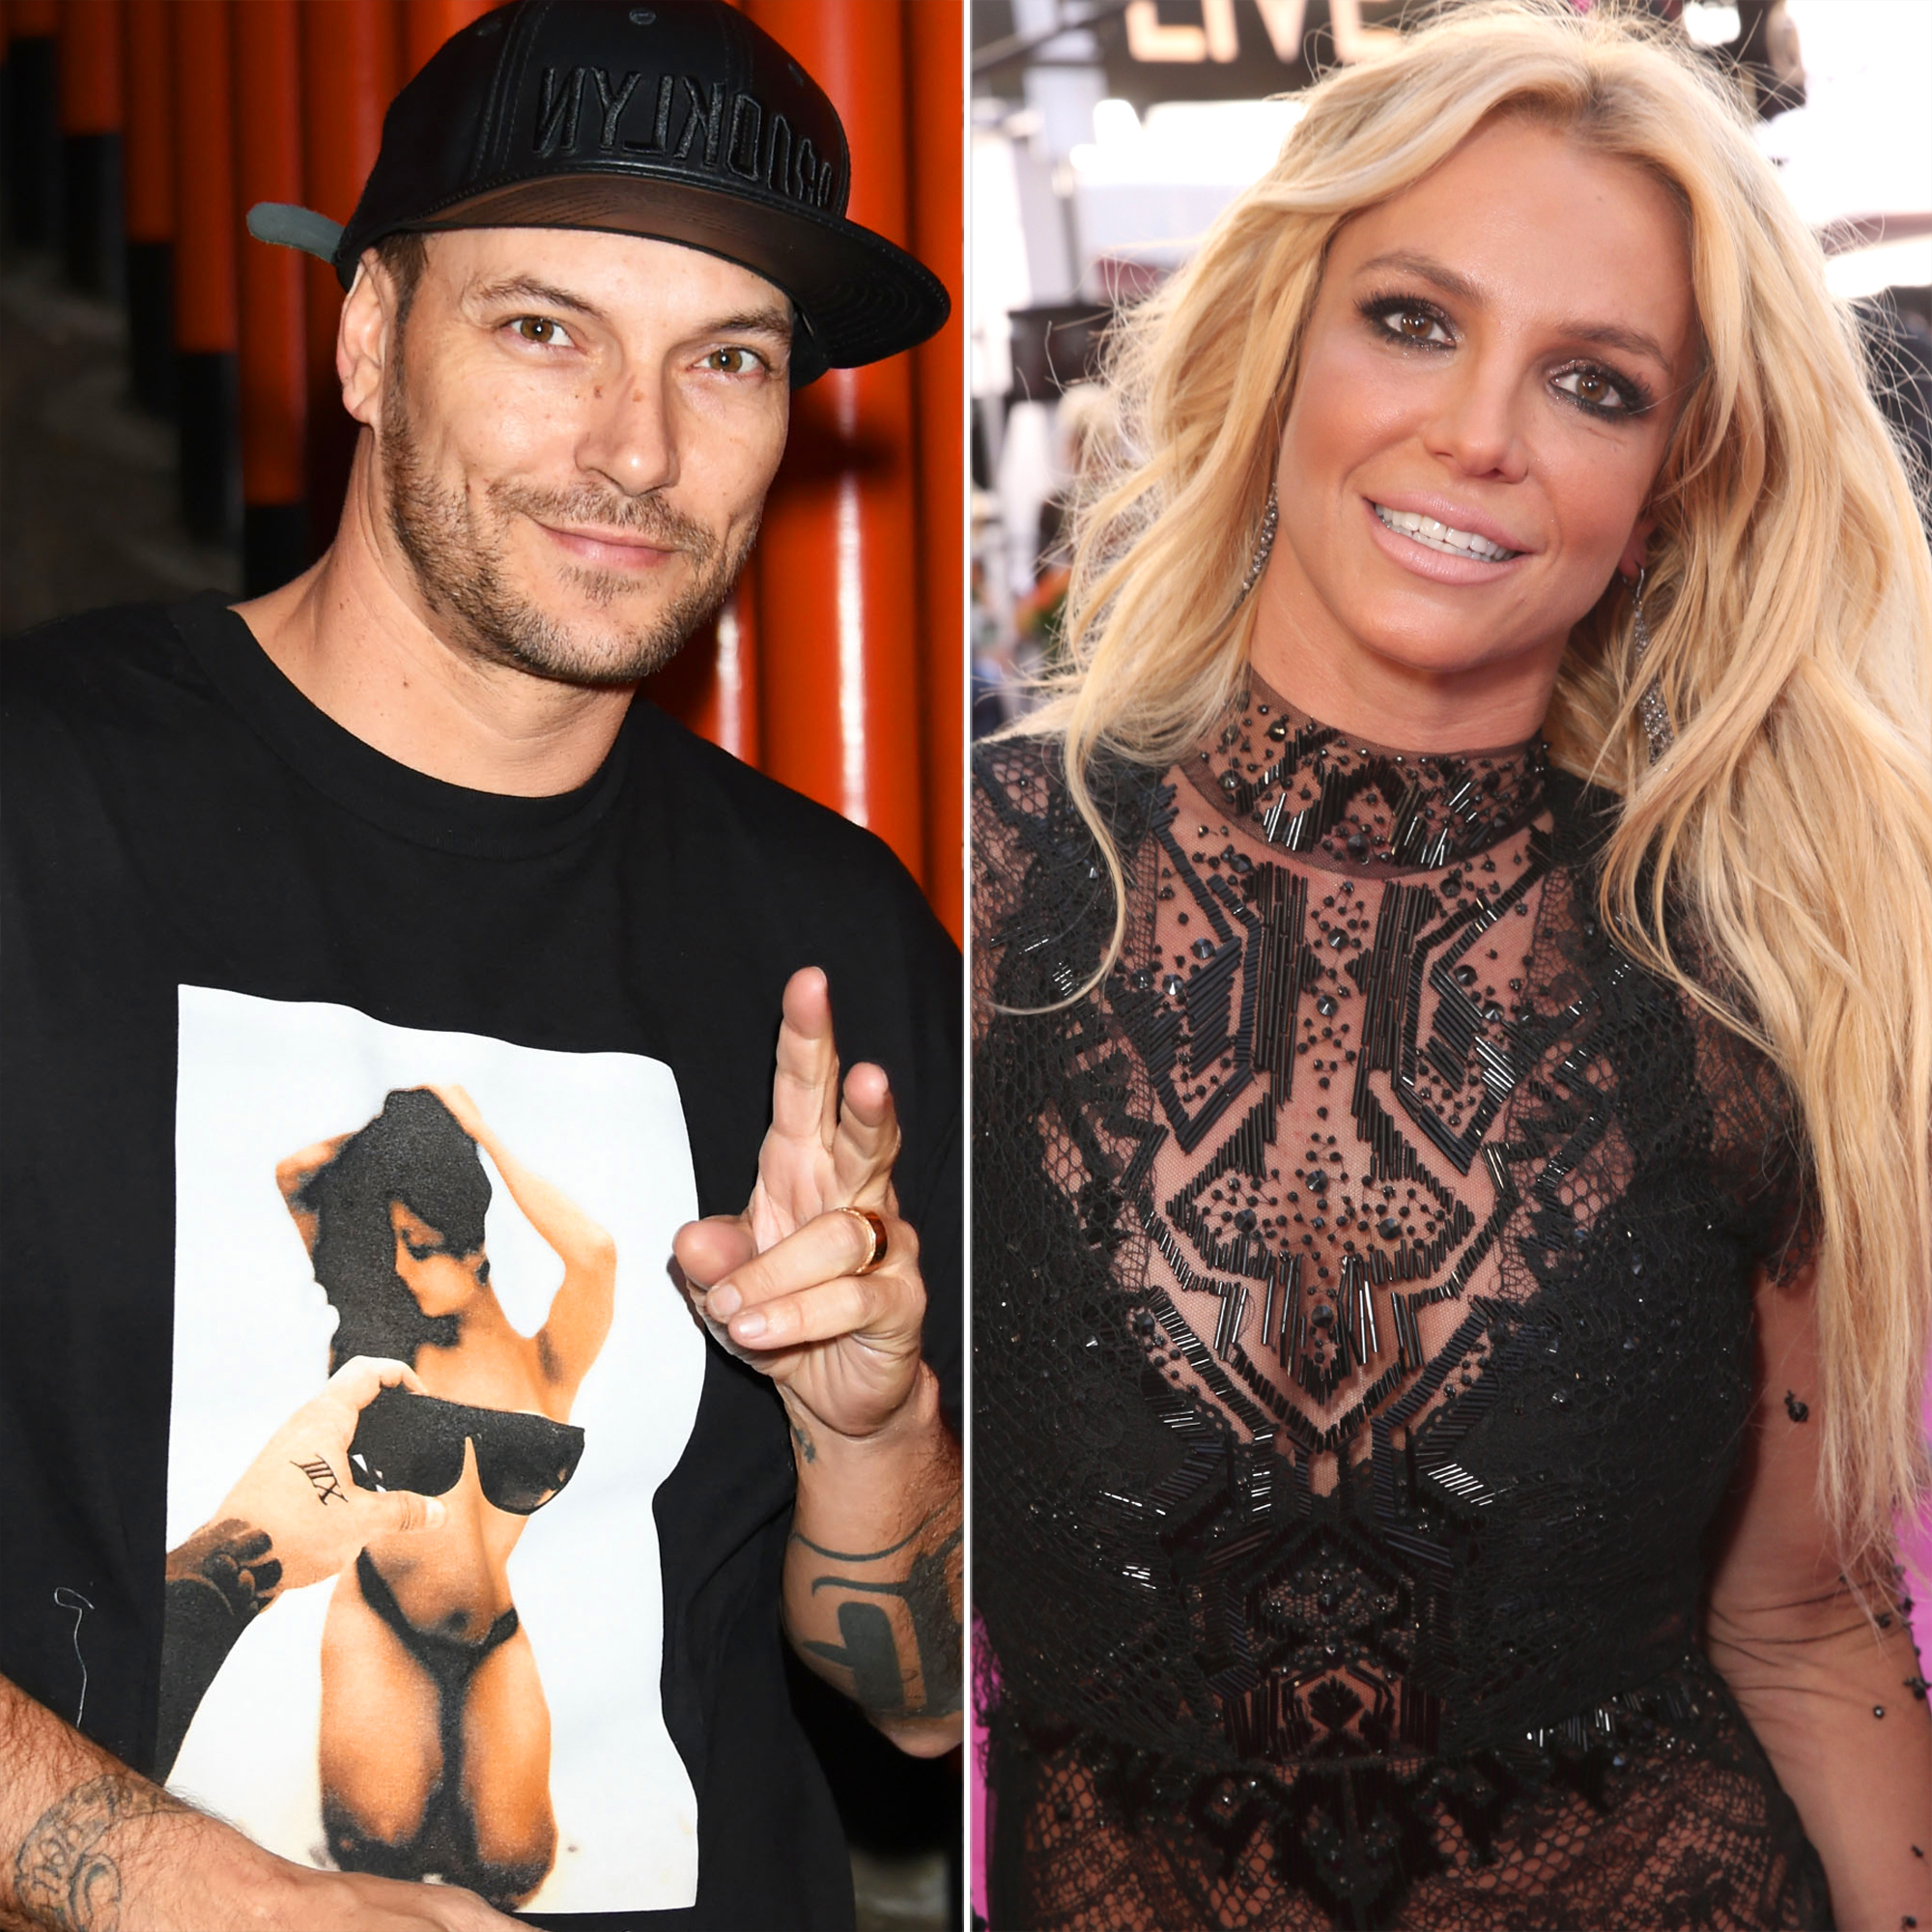 Britney Spears Lands Major High-Fashion Campaign & Kills It In Photos